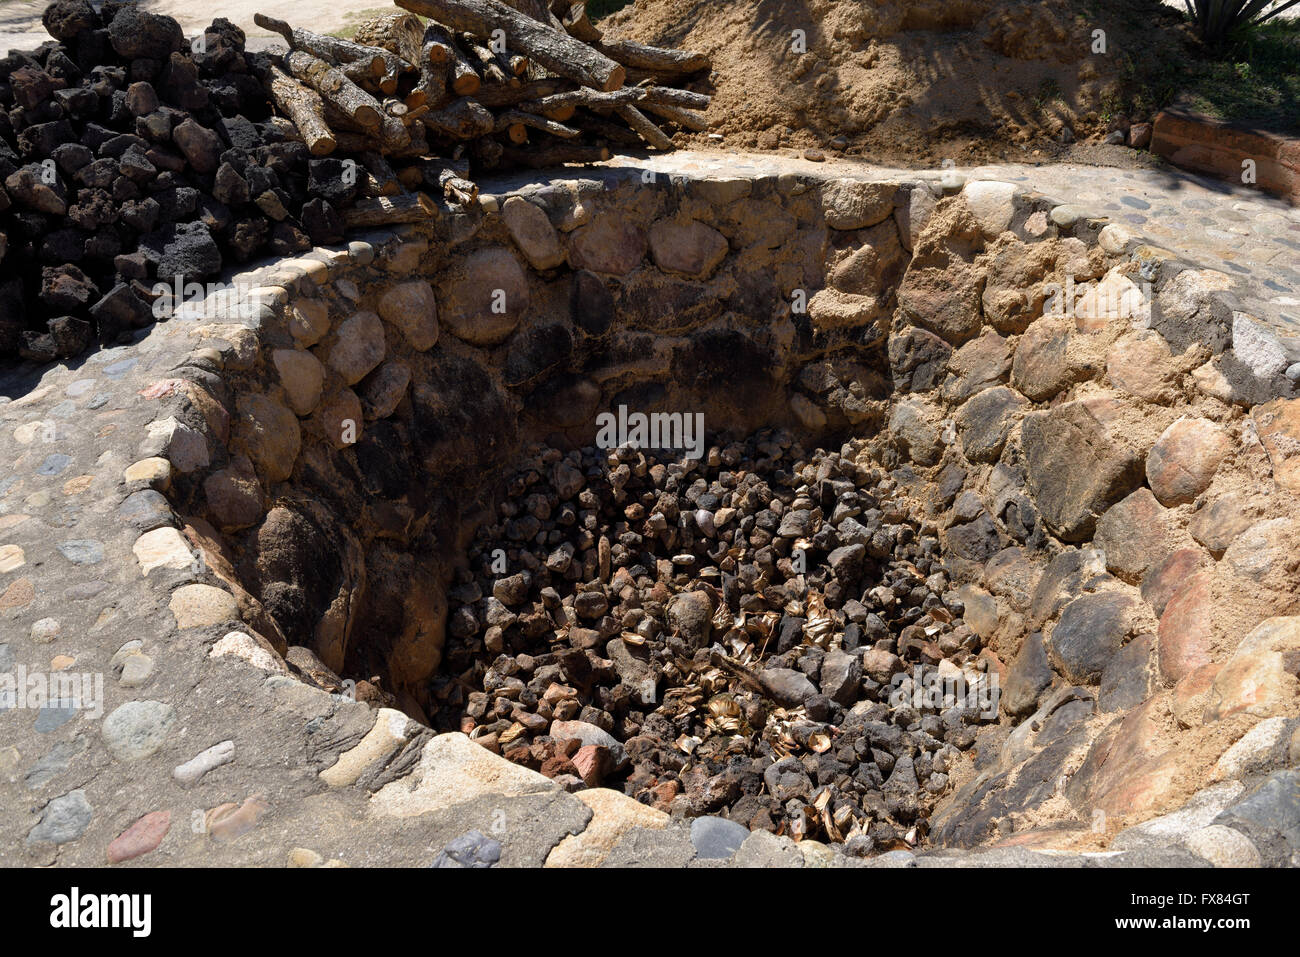 In ground oven pit for baking blue agave hearts at a Tequila factory Jalisco Mexico - Stock Image